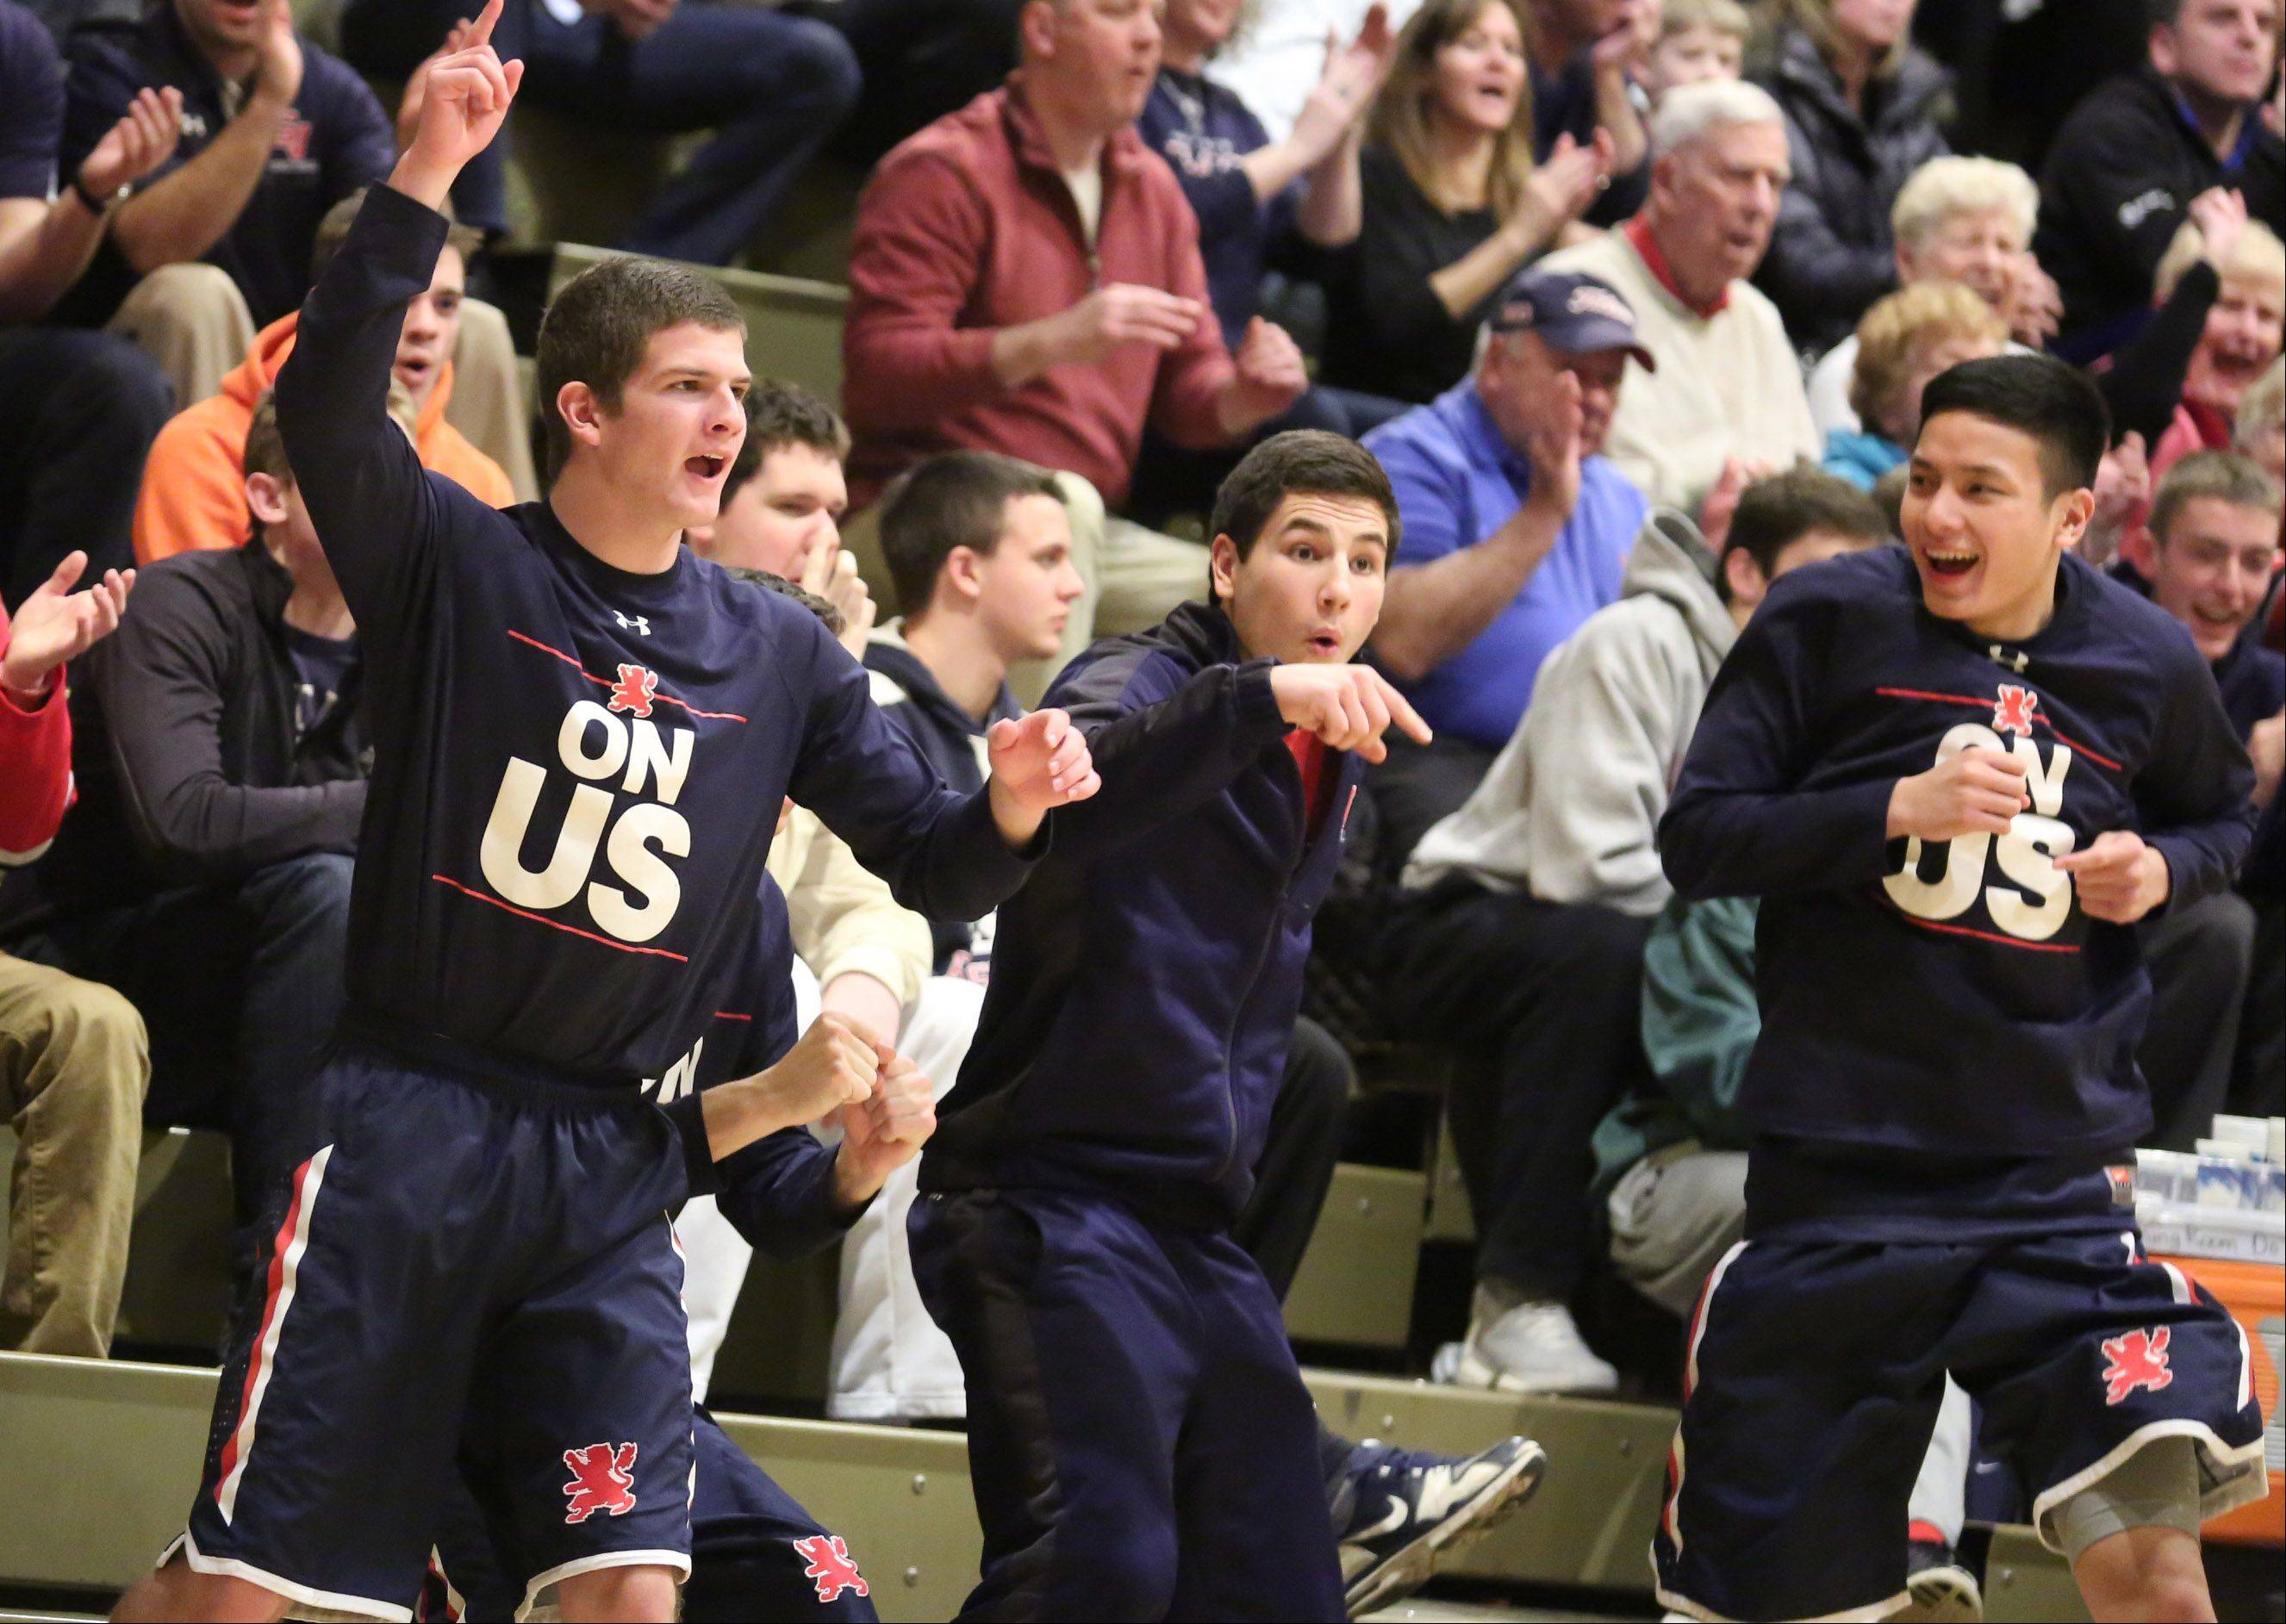 St. Viator's bench celebrates a 3-point shot against Prospect at the Wheeling Hardwood Classic on Friday.